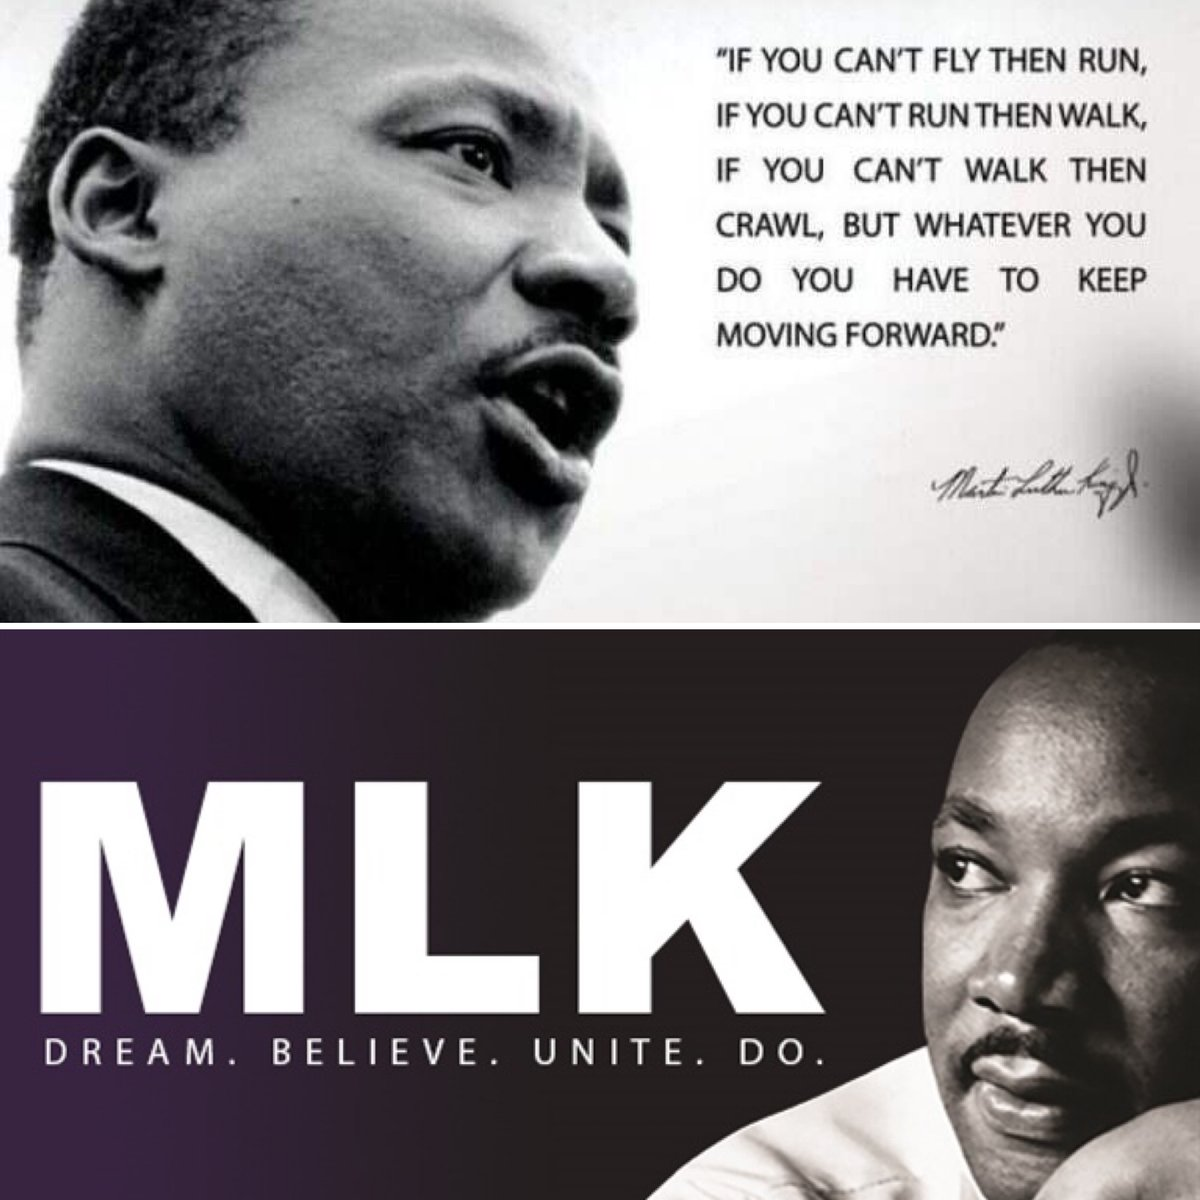 As we celebrate the birthday of Dr. Martin Luther King Jr. today, we hope all take some time to reflect. Whether that's enjoying the holiday, or taking a quiet moment at work. While we've come so far, 2020 showed us the tremendous amount of work we still have to do. #MLKDay #MLK